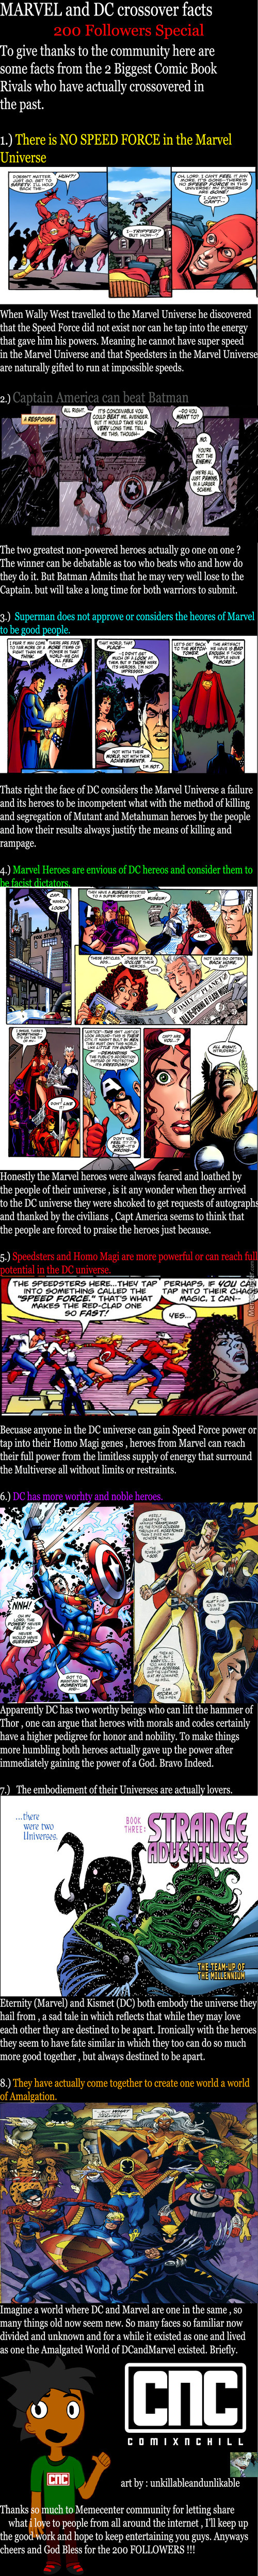 200 Followers Special : Dc And Marvel Crossover